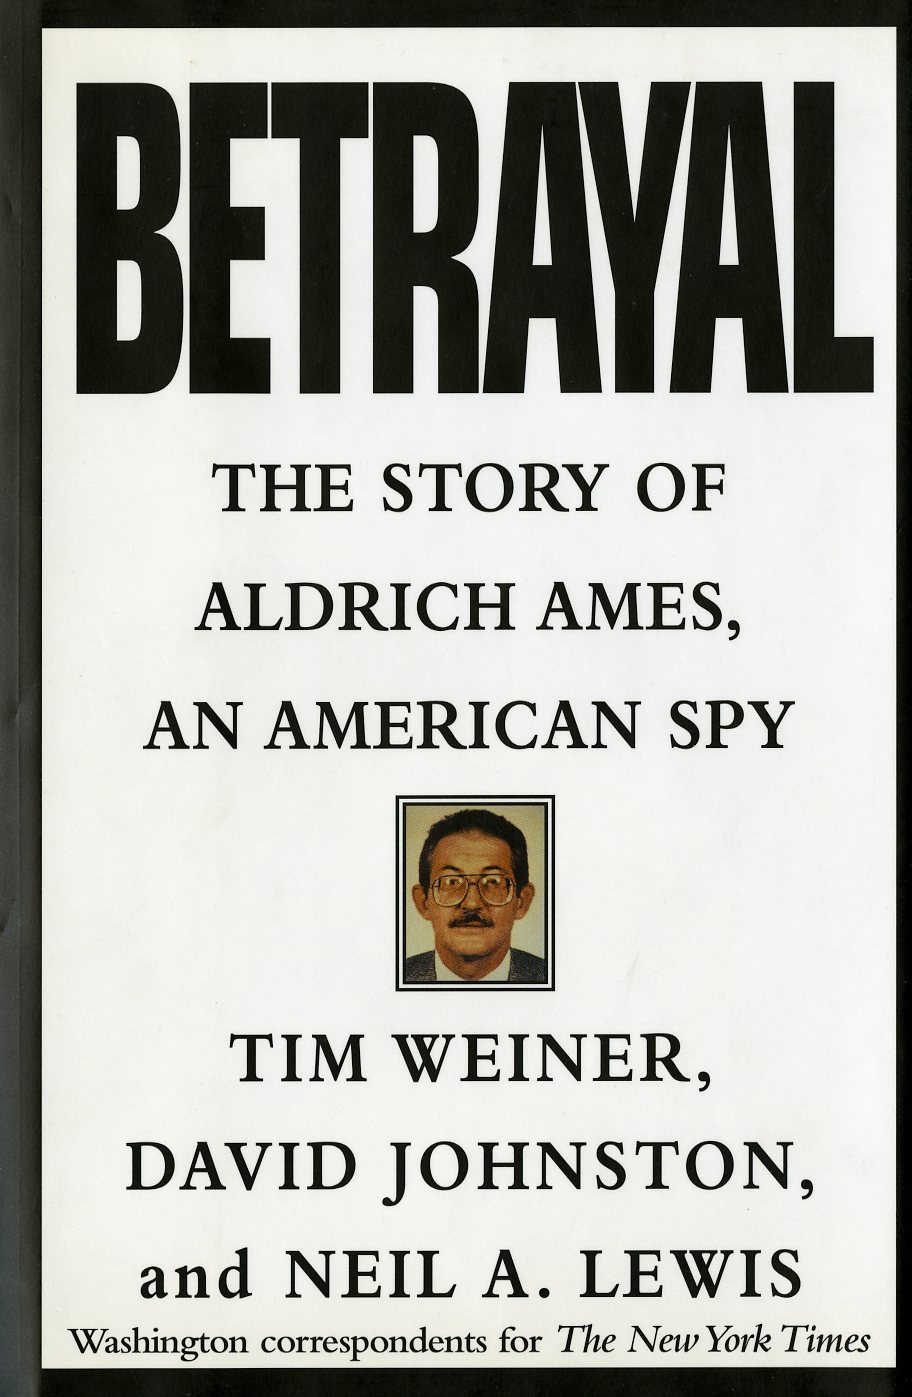 Betrayal by Wiener, Johnston & Lewis